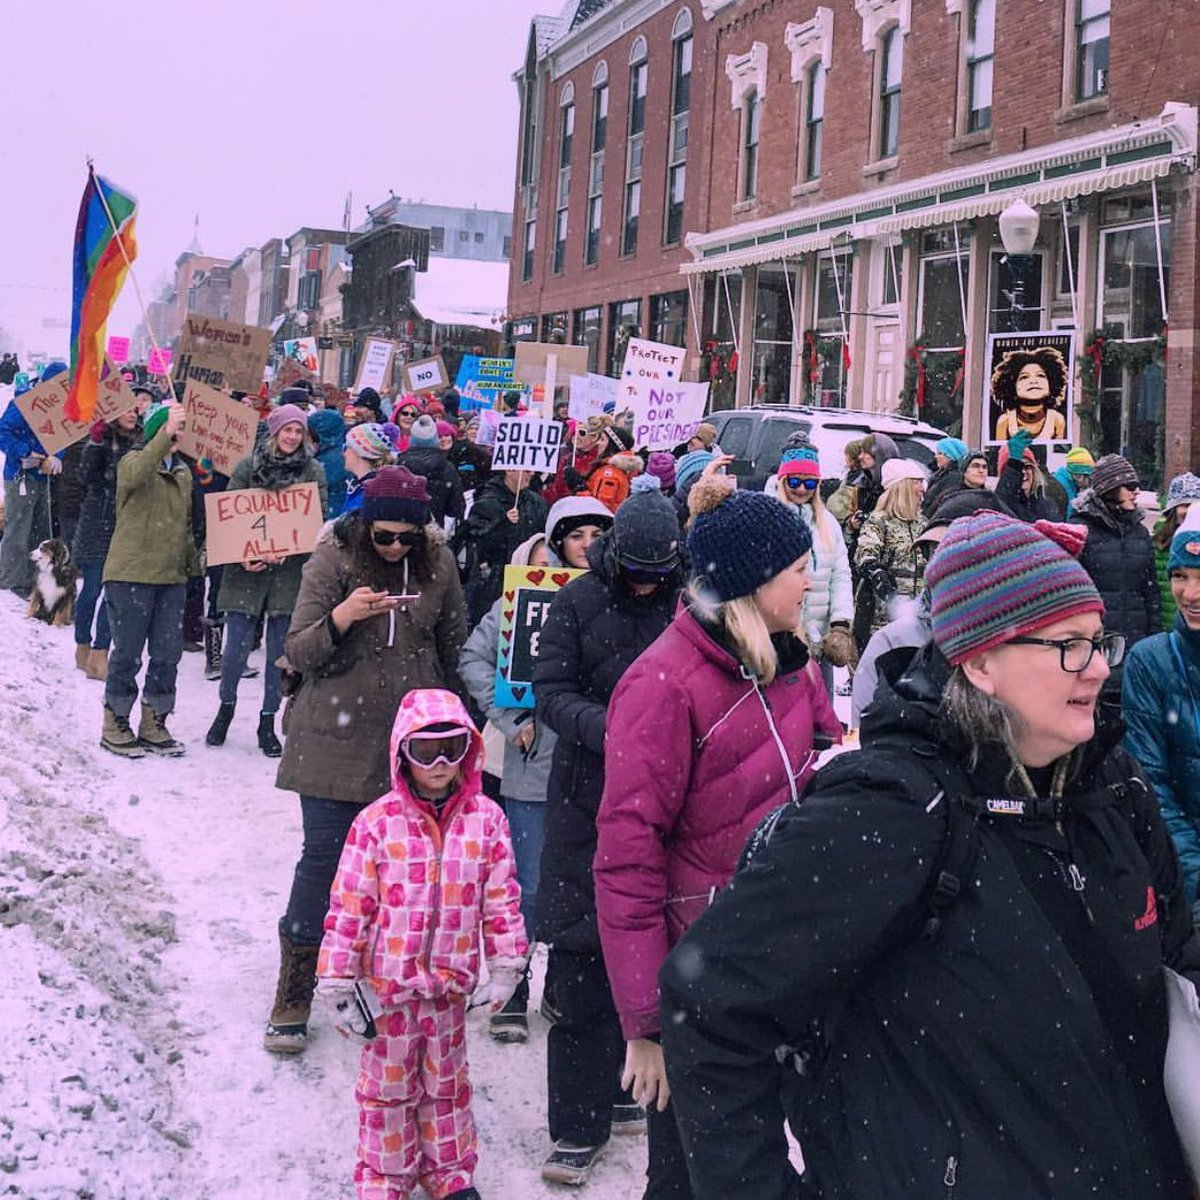 Living In A Small Town Didn't Stop These People From Starting Women's Marches